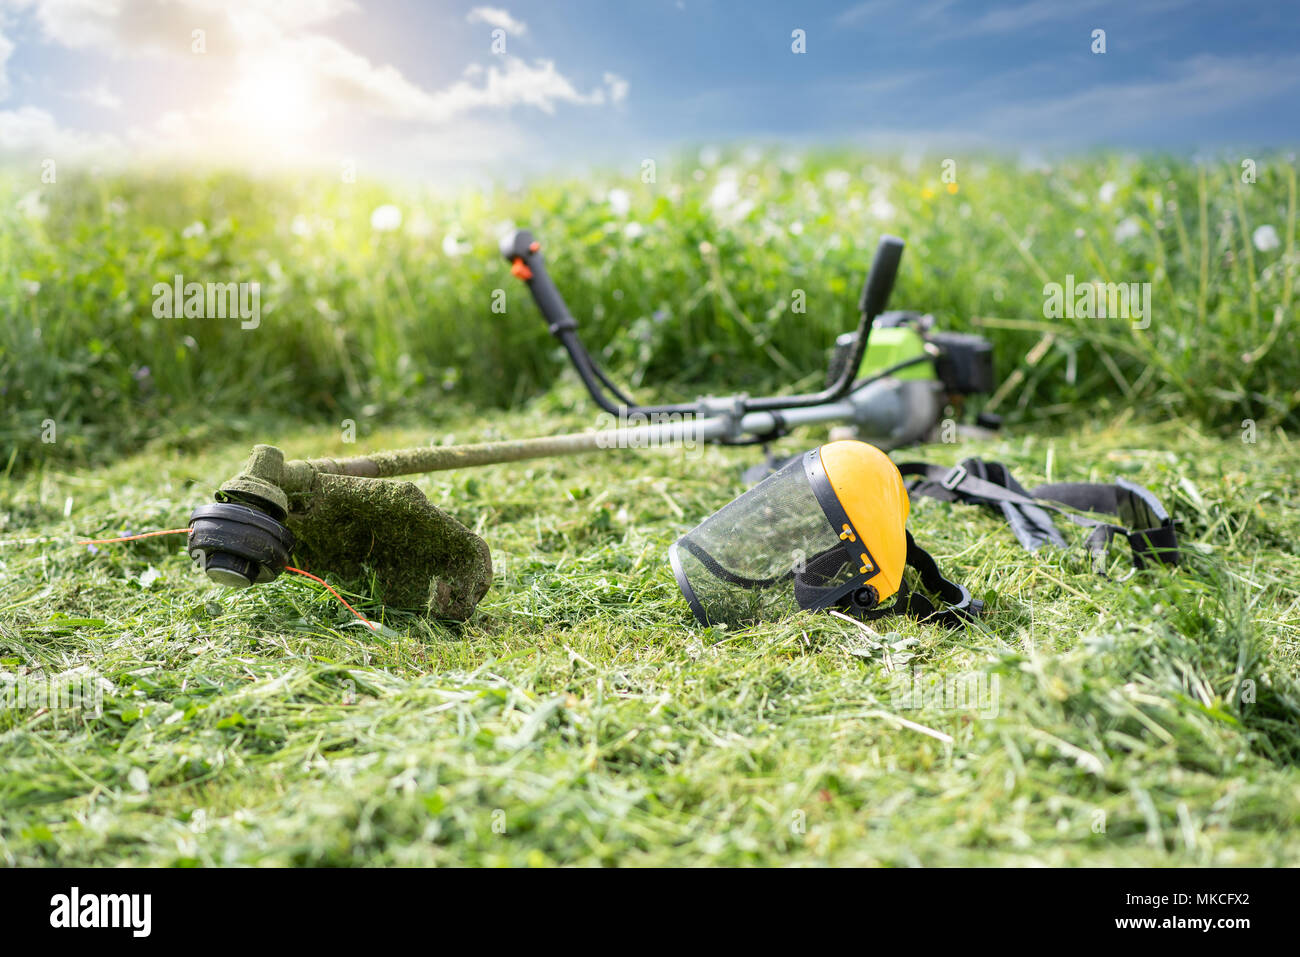 String trimmer and protective face mask on mown grass, growing grass and the blue sky on the background, sunlight - Stock Image